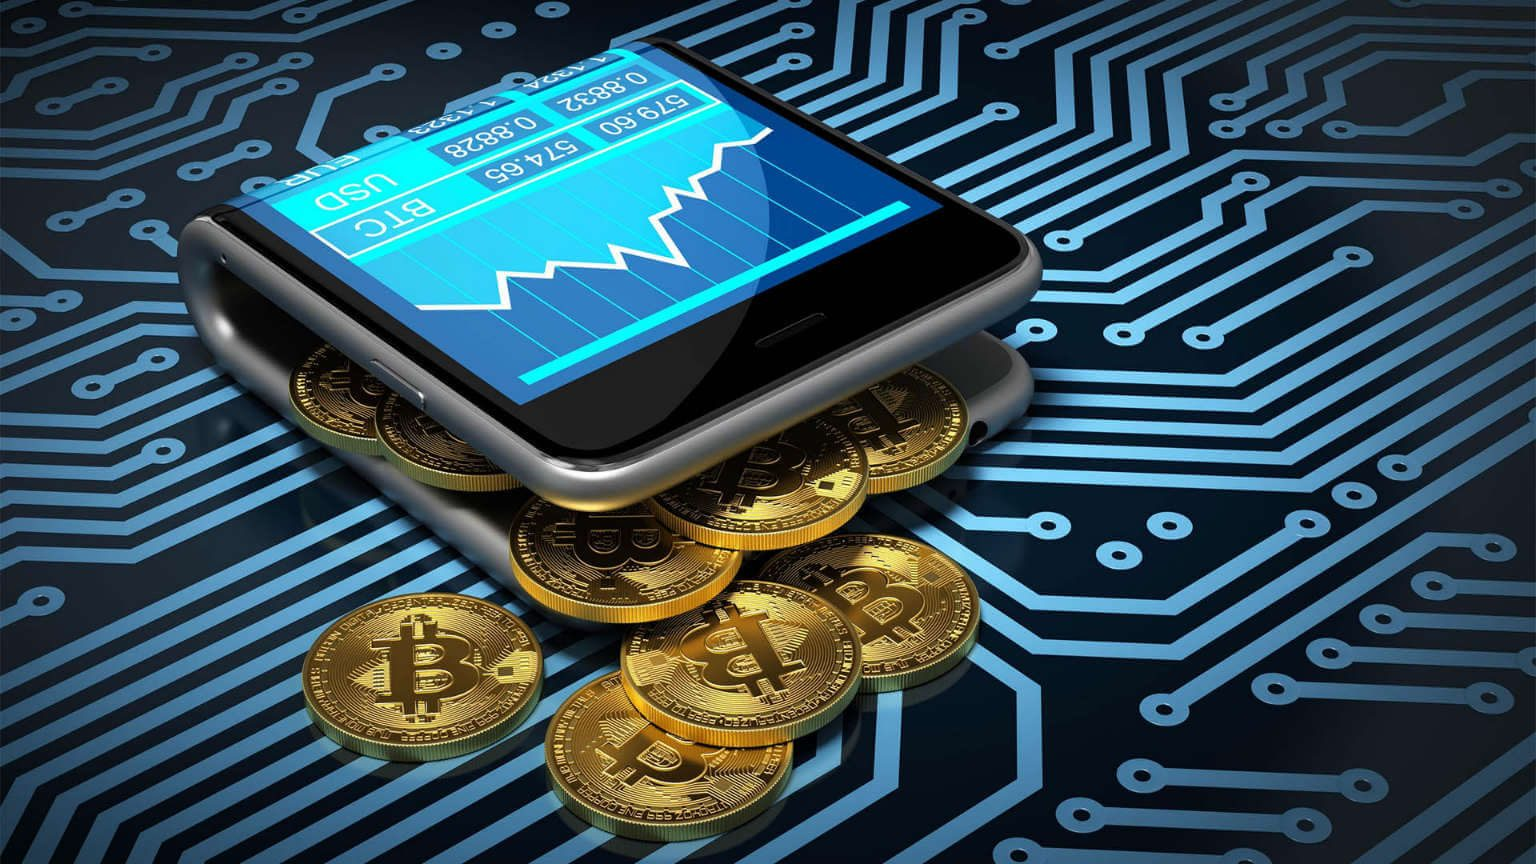 wallet cellphone containing bitcoins